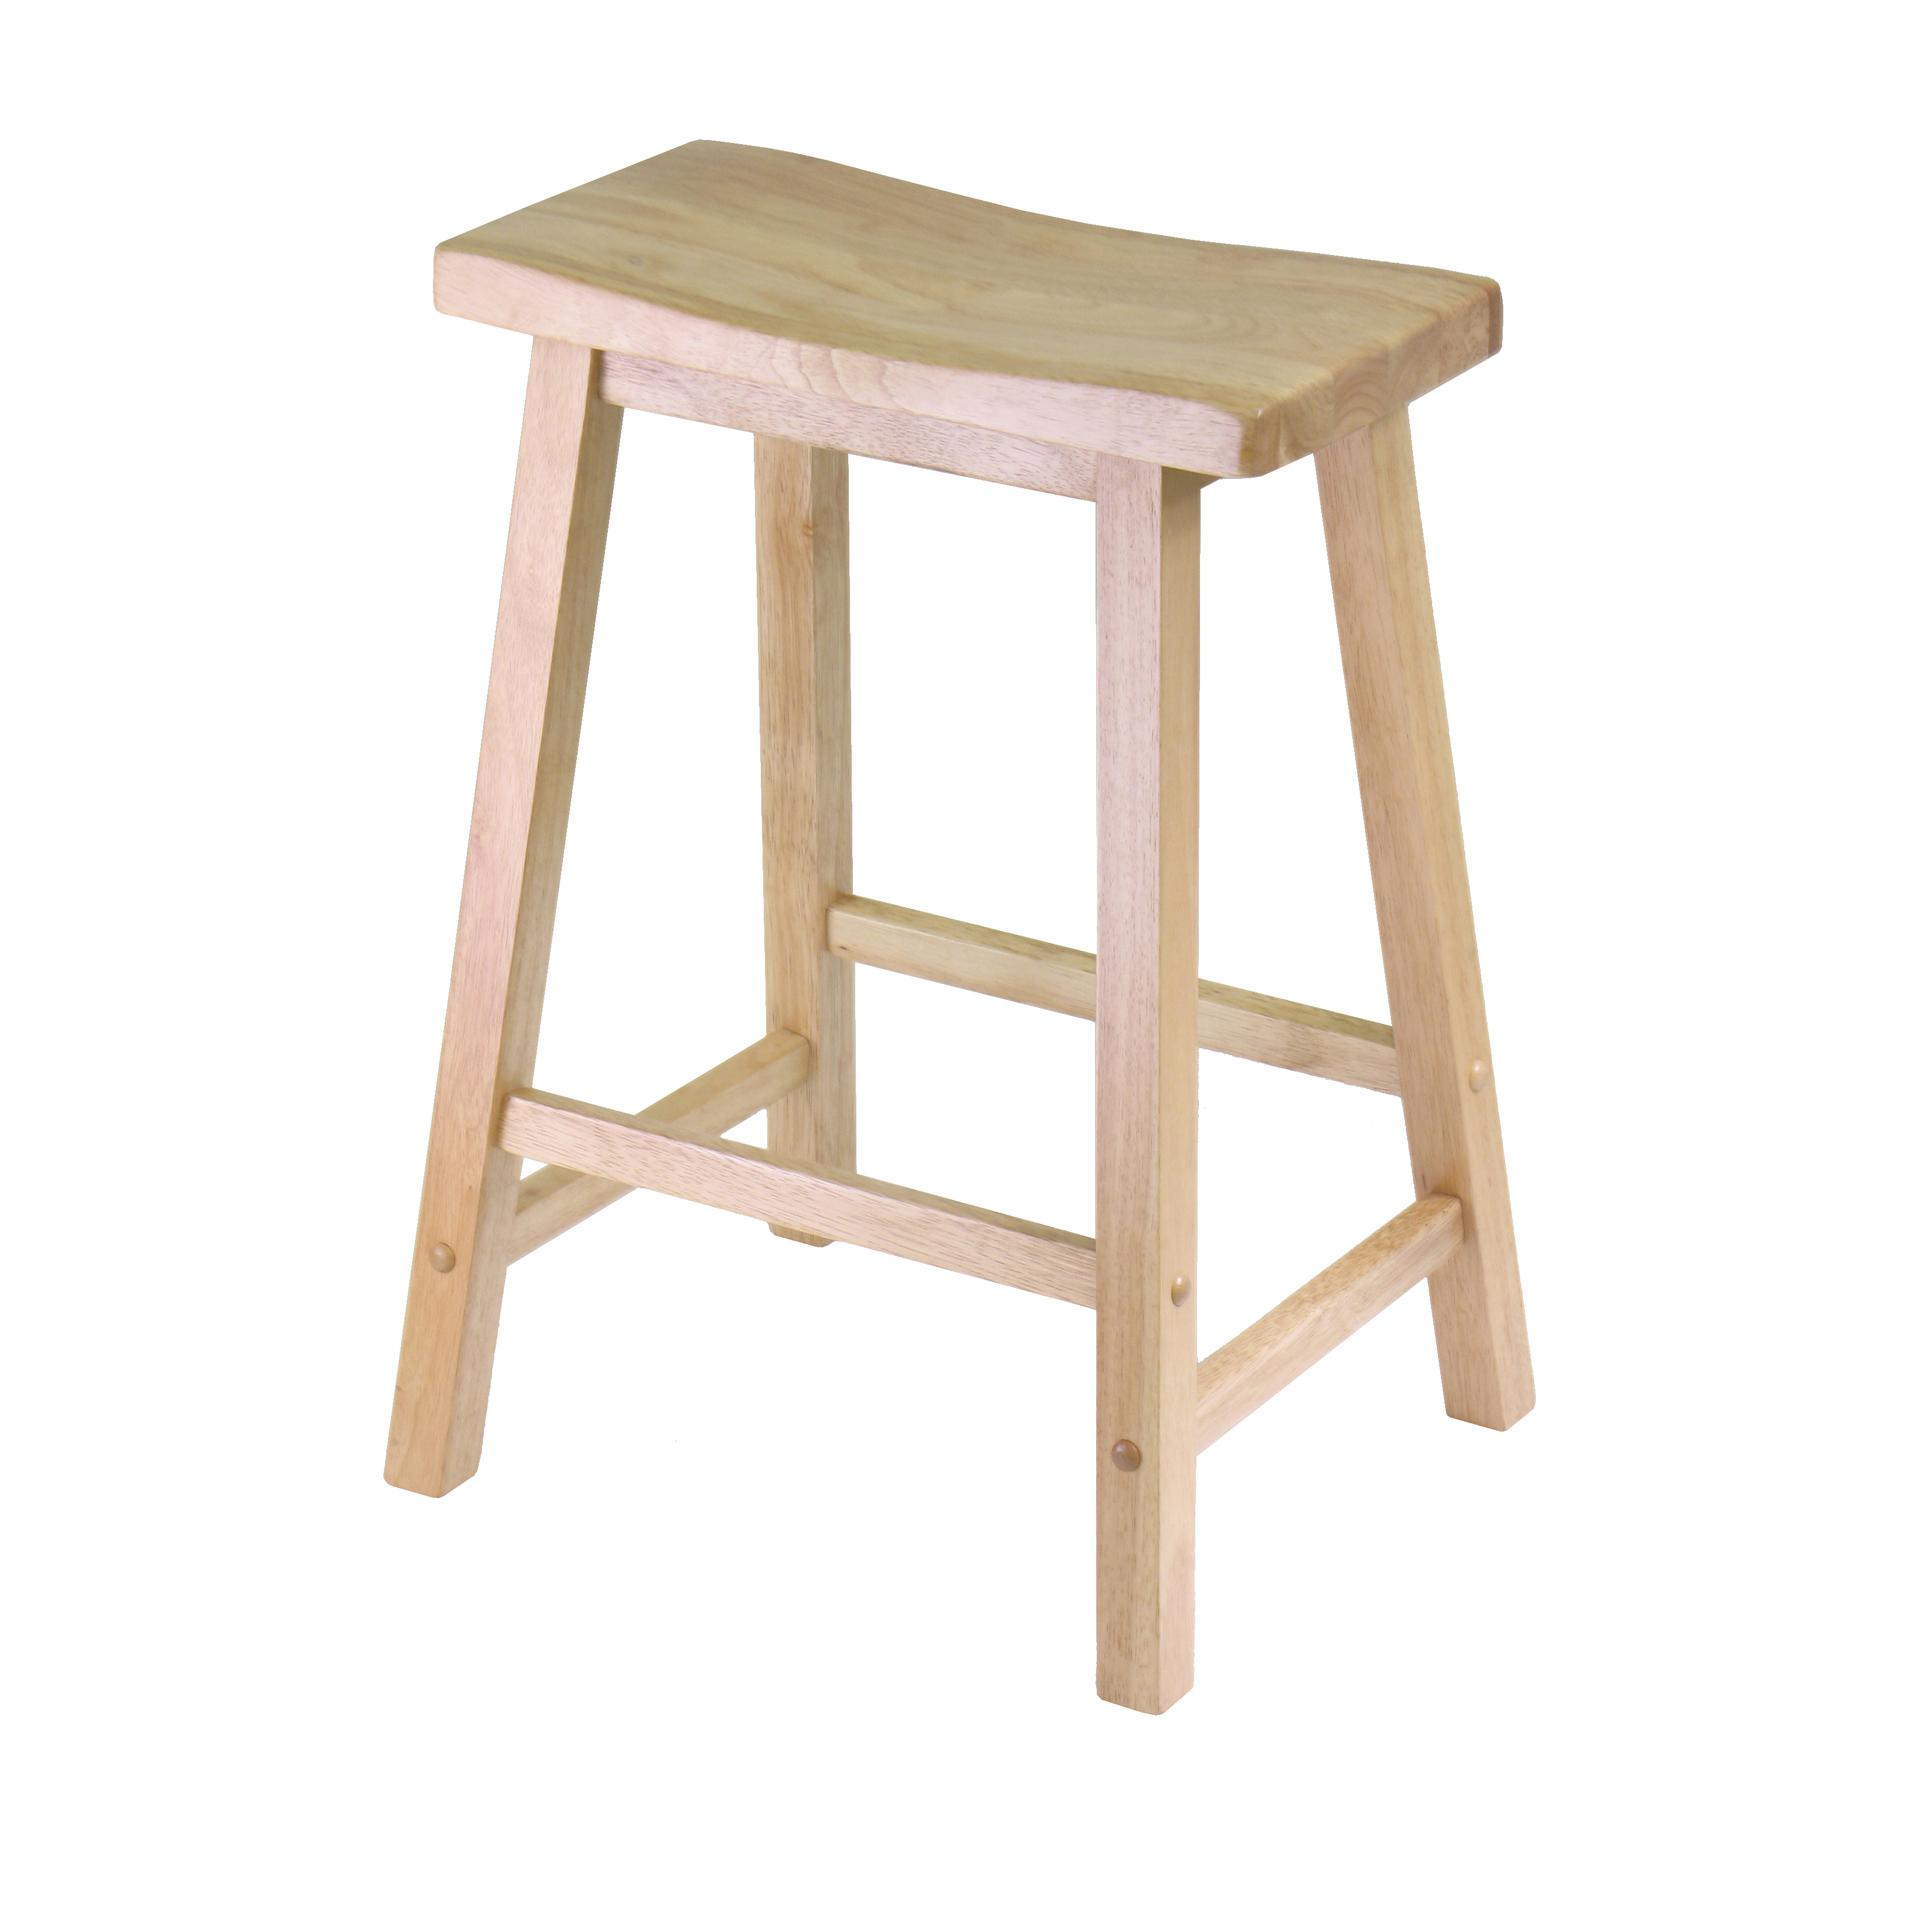 Winsome wood 24 saddle seat stool nat for Bar stools near me